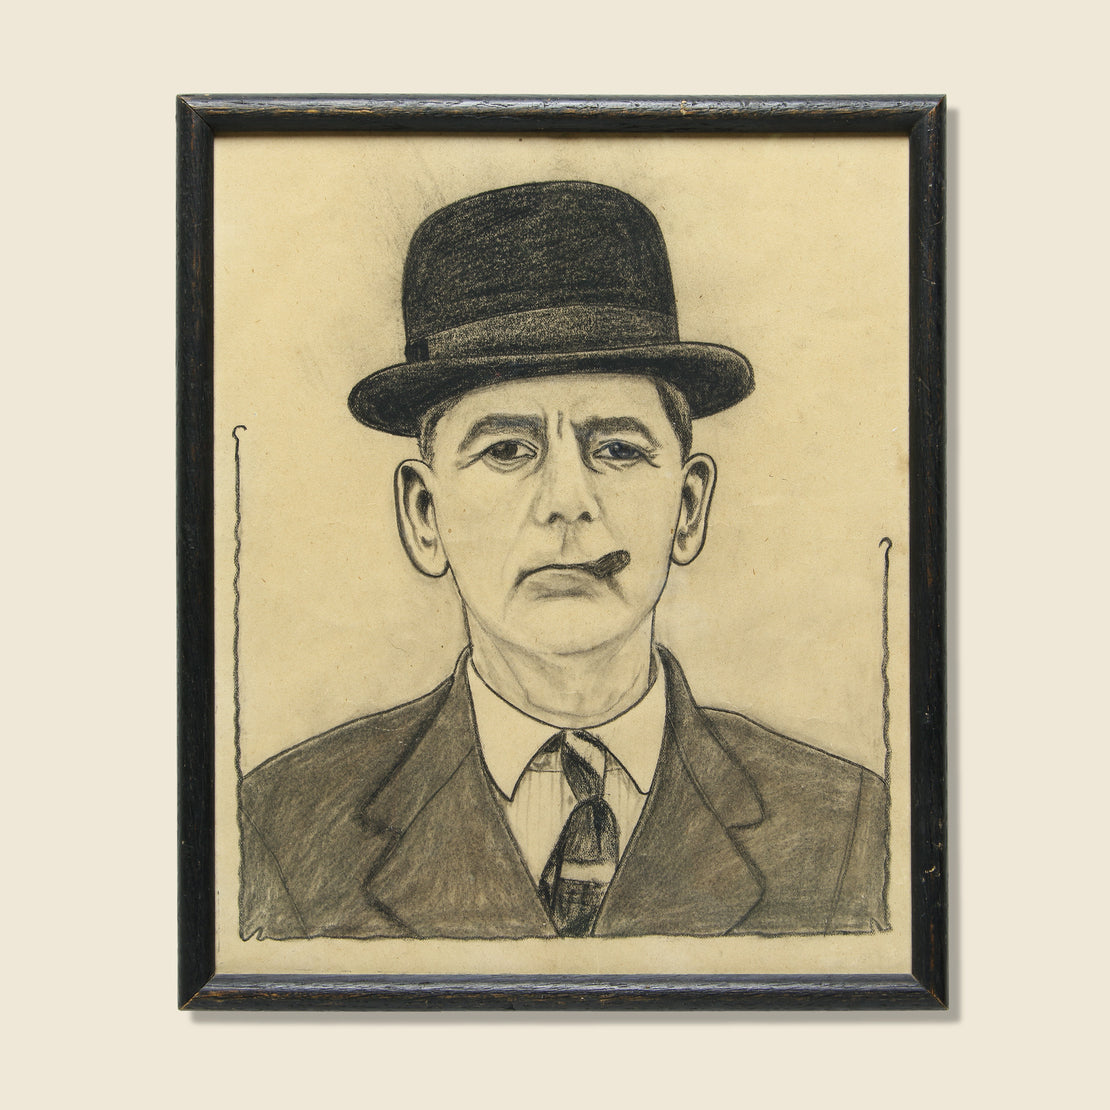 Vintage Small Chalk Drawing - Man in Bowler